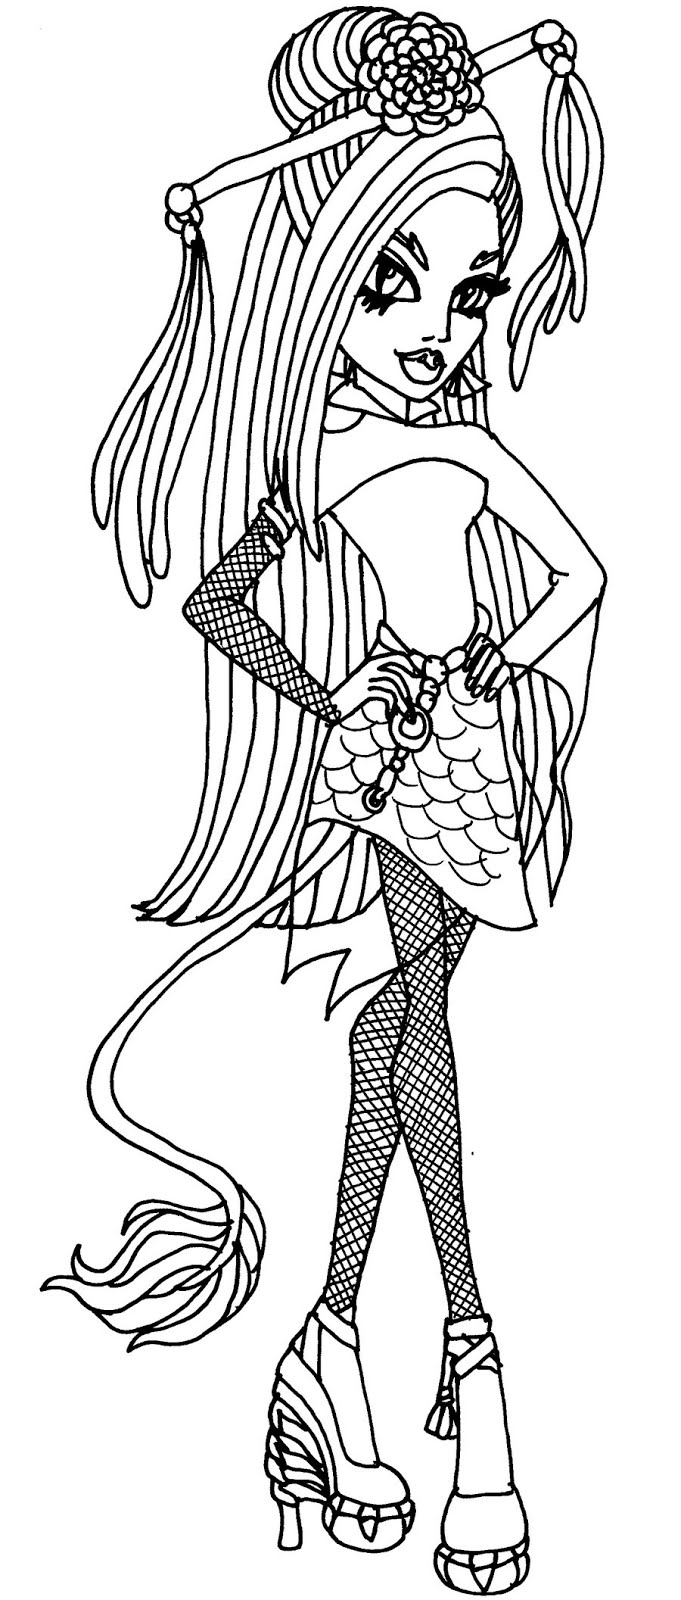 monster high black and white coloring pages dibujos y plantillas para imprimir dibujos de monster black white coloring monster pages and high